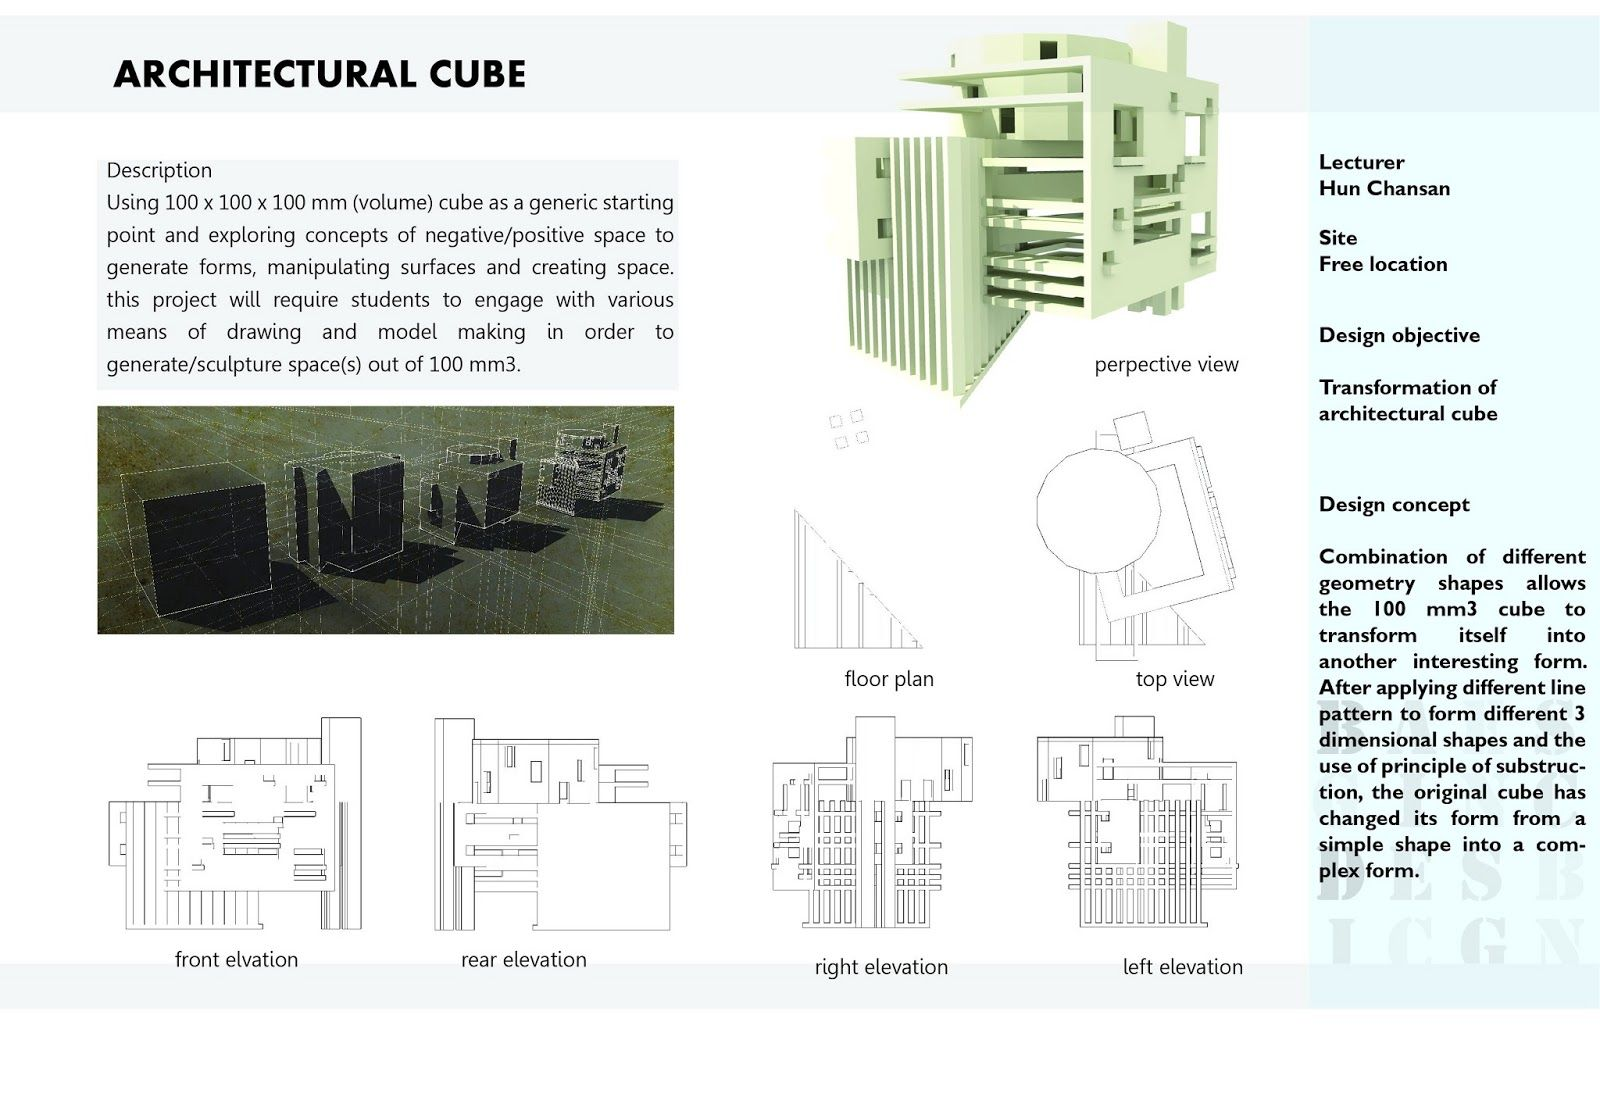 Architectural-Cube-Transformation-concept-design-architecture ...